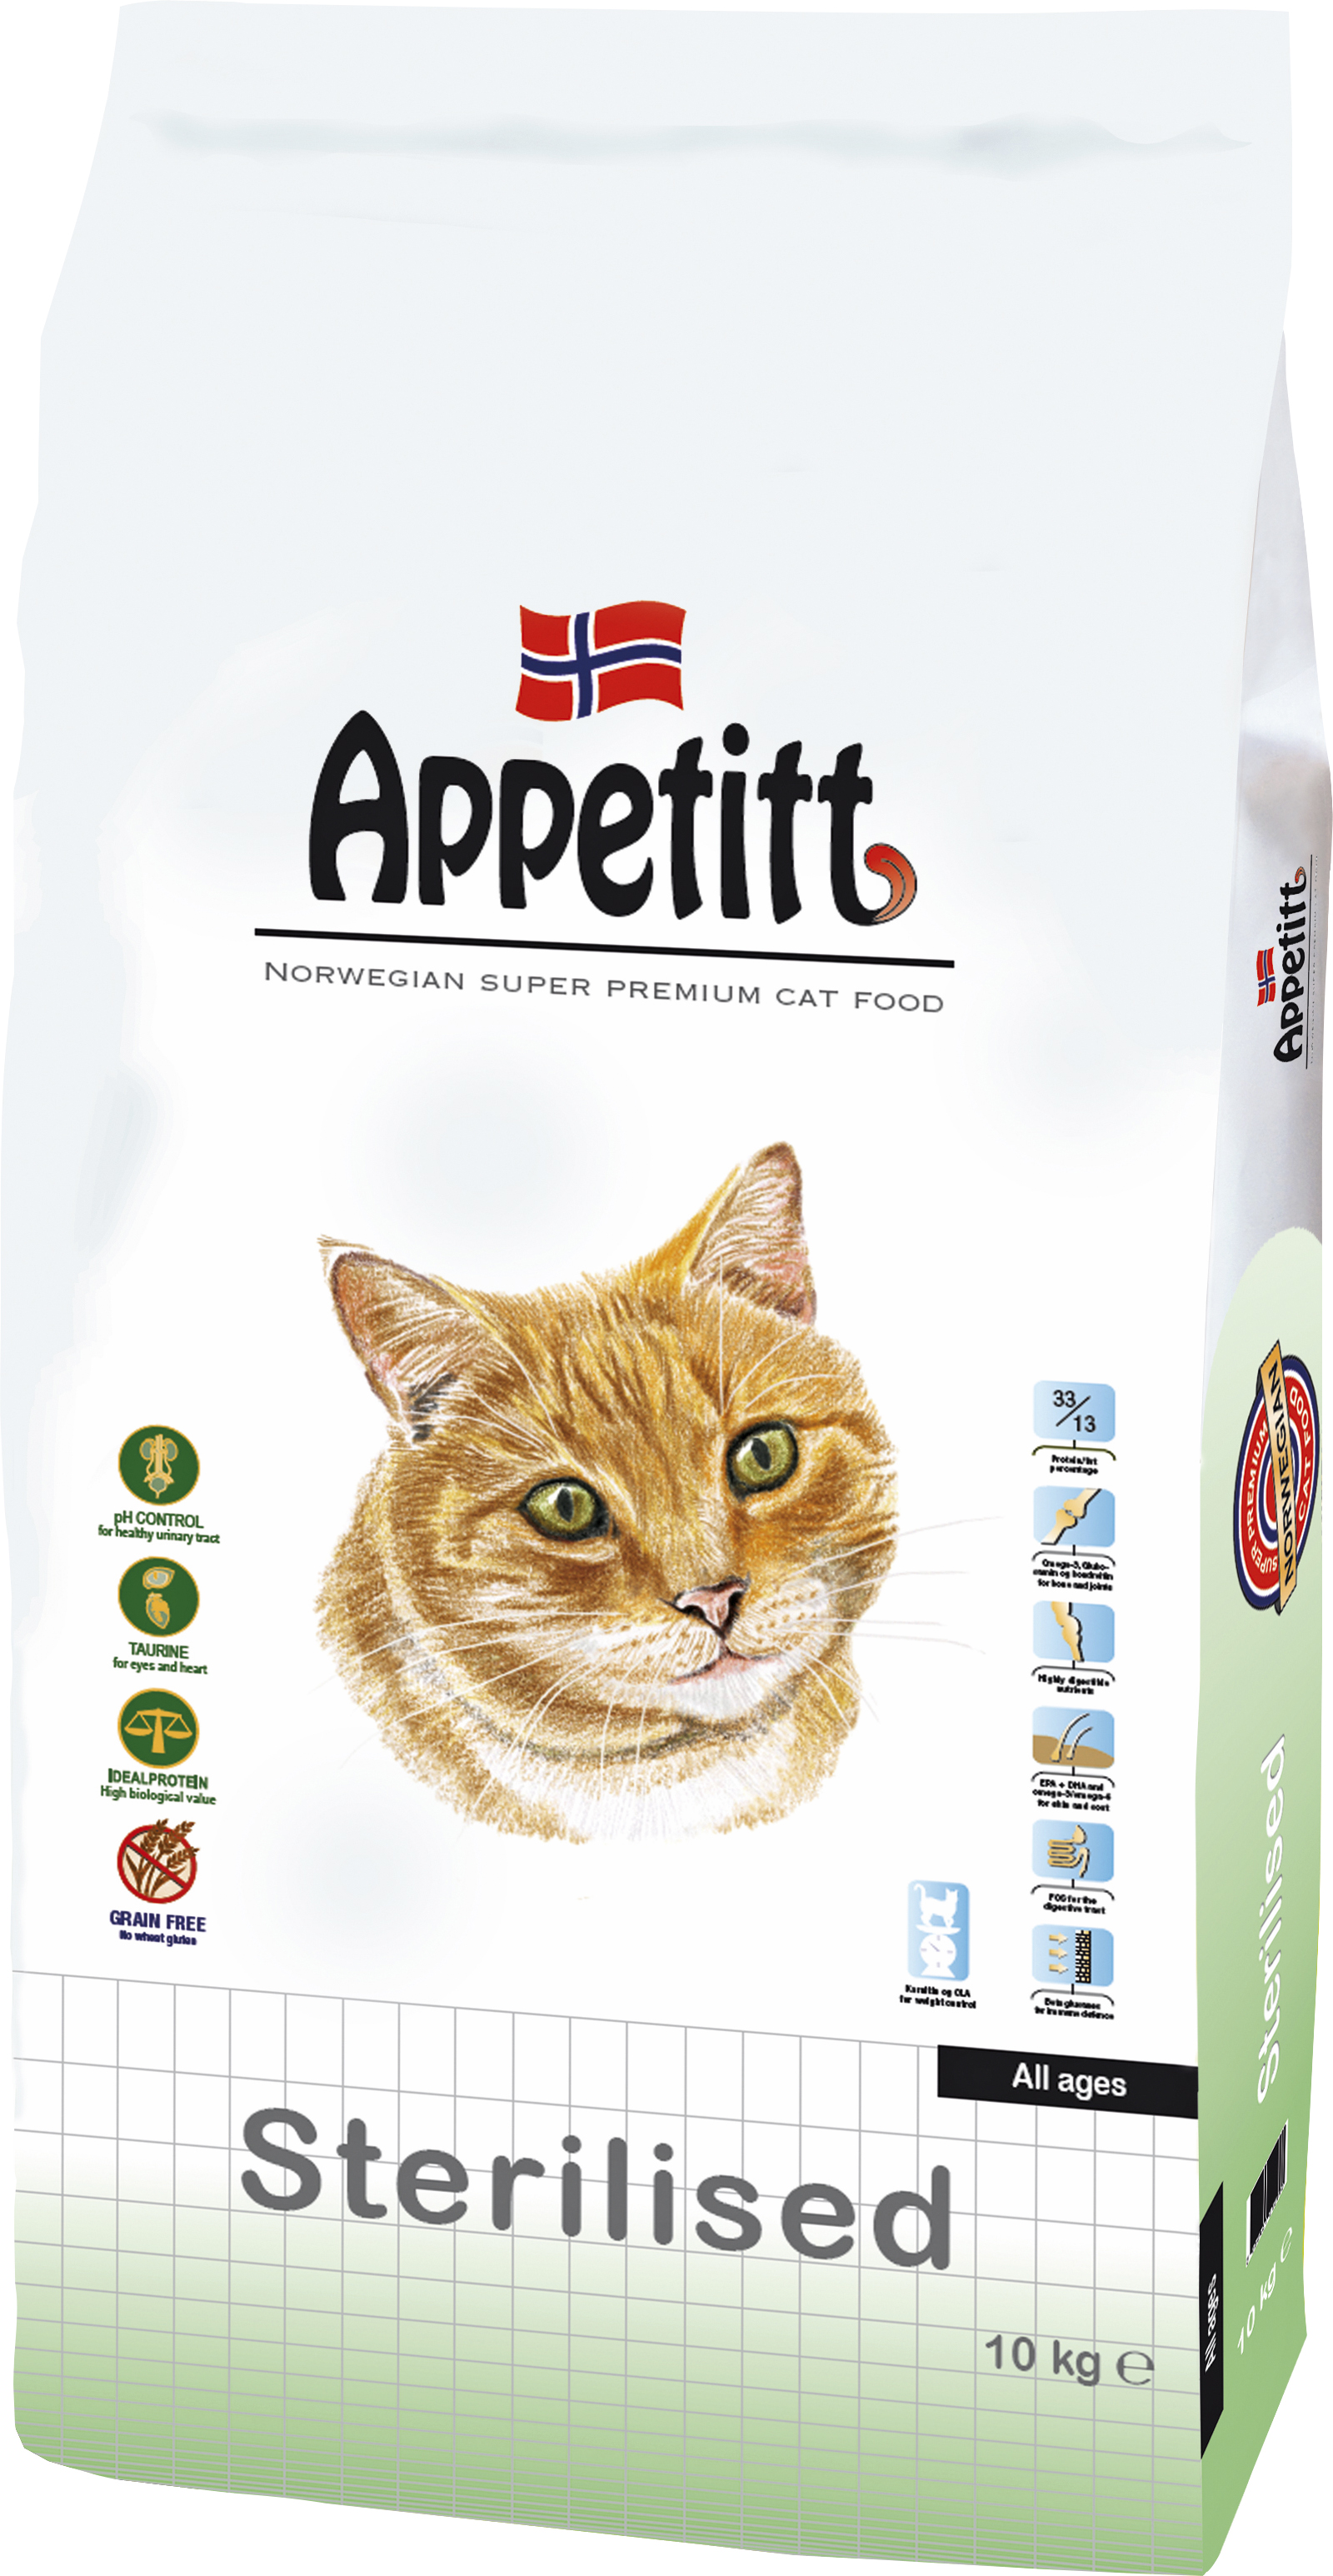 Kattmat Appetitt Adult Sterilised, 10 kg